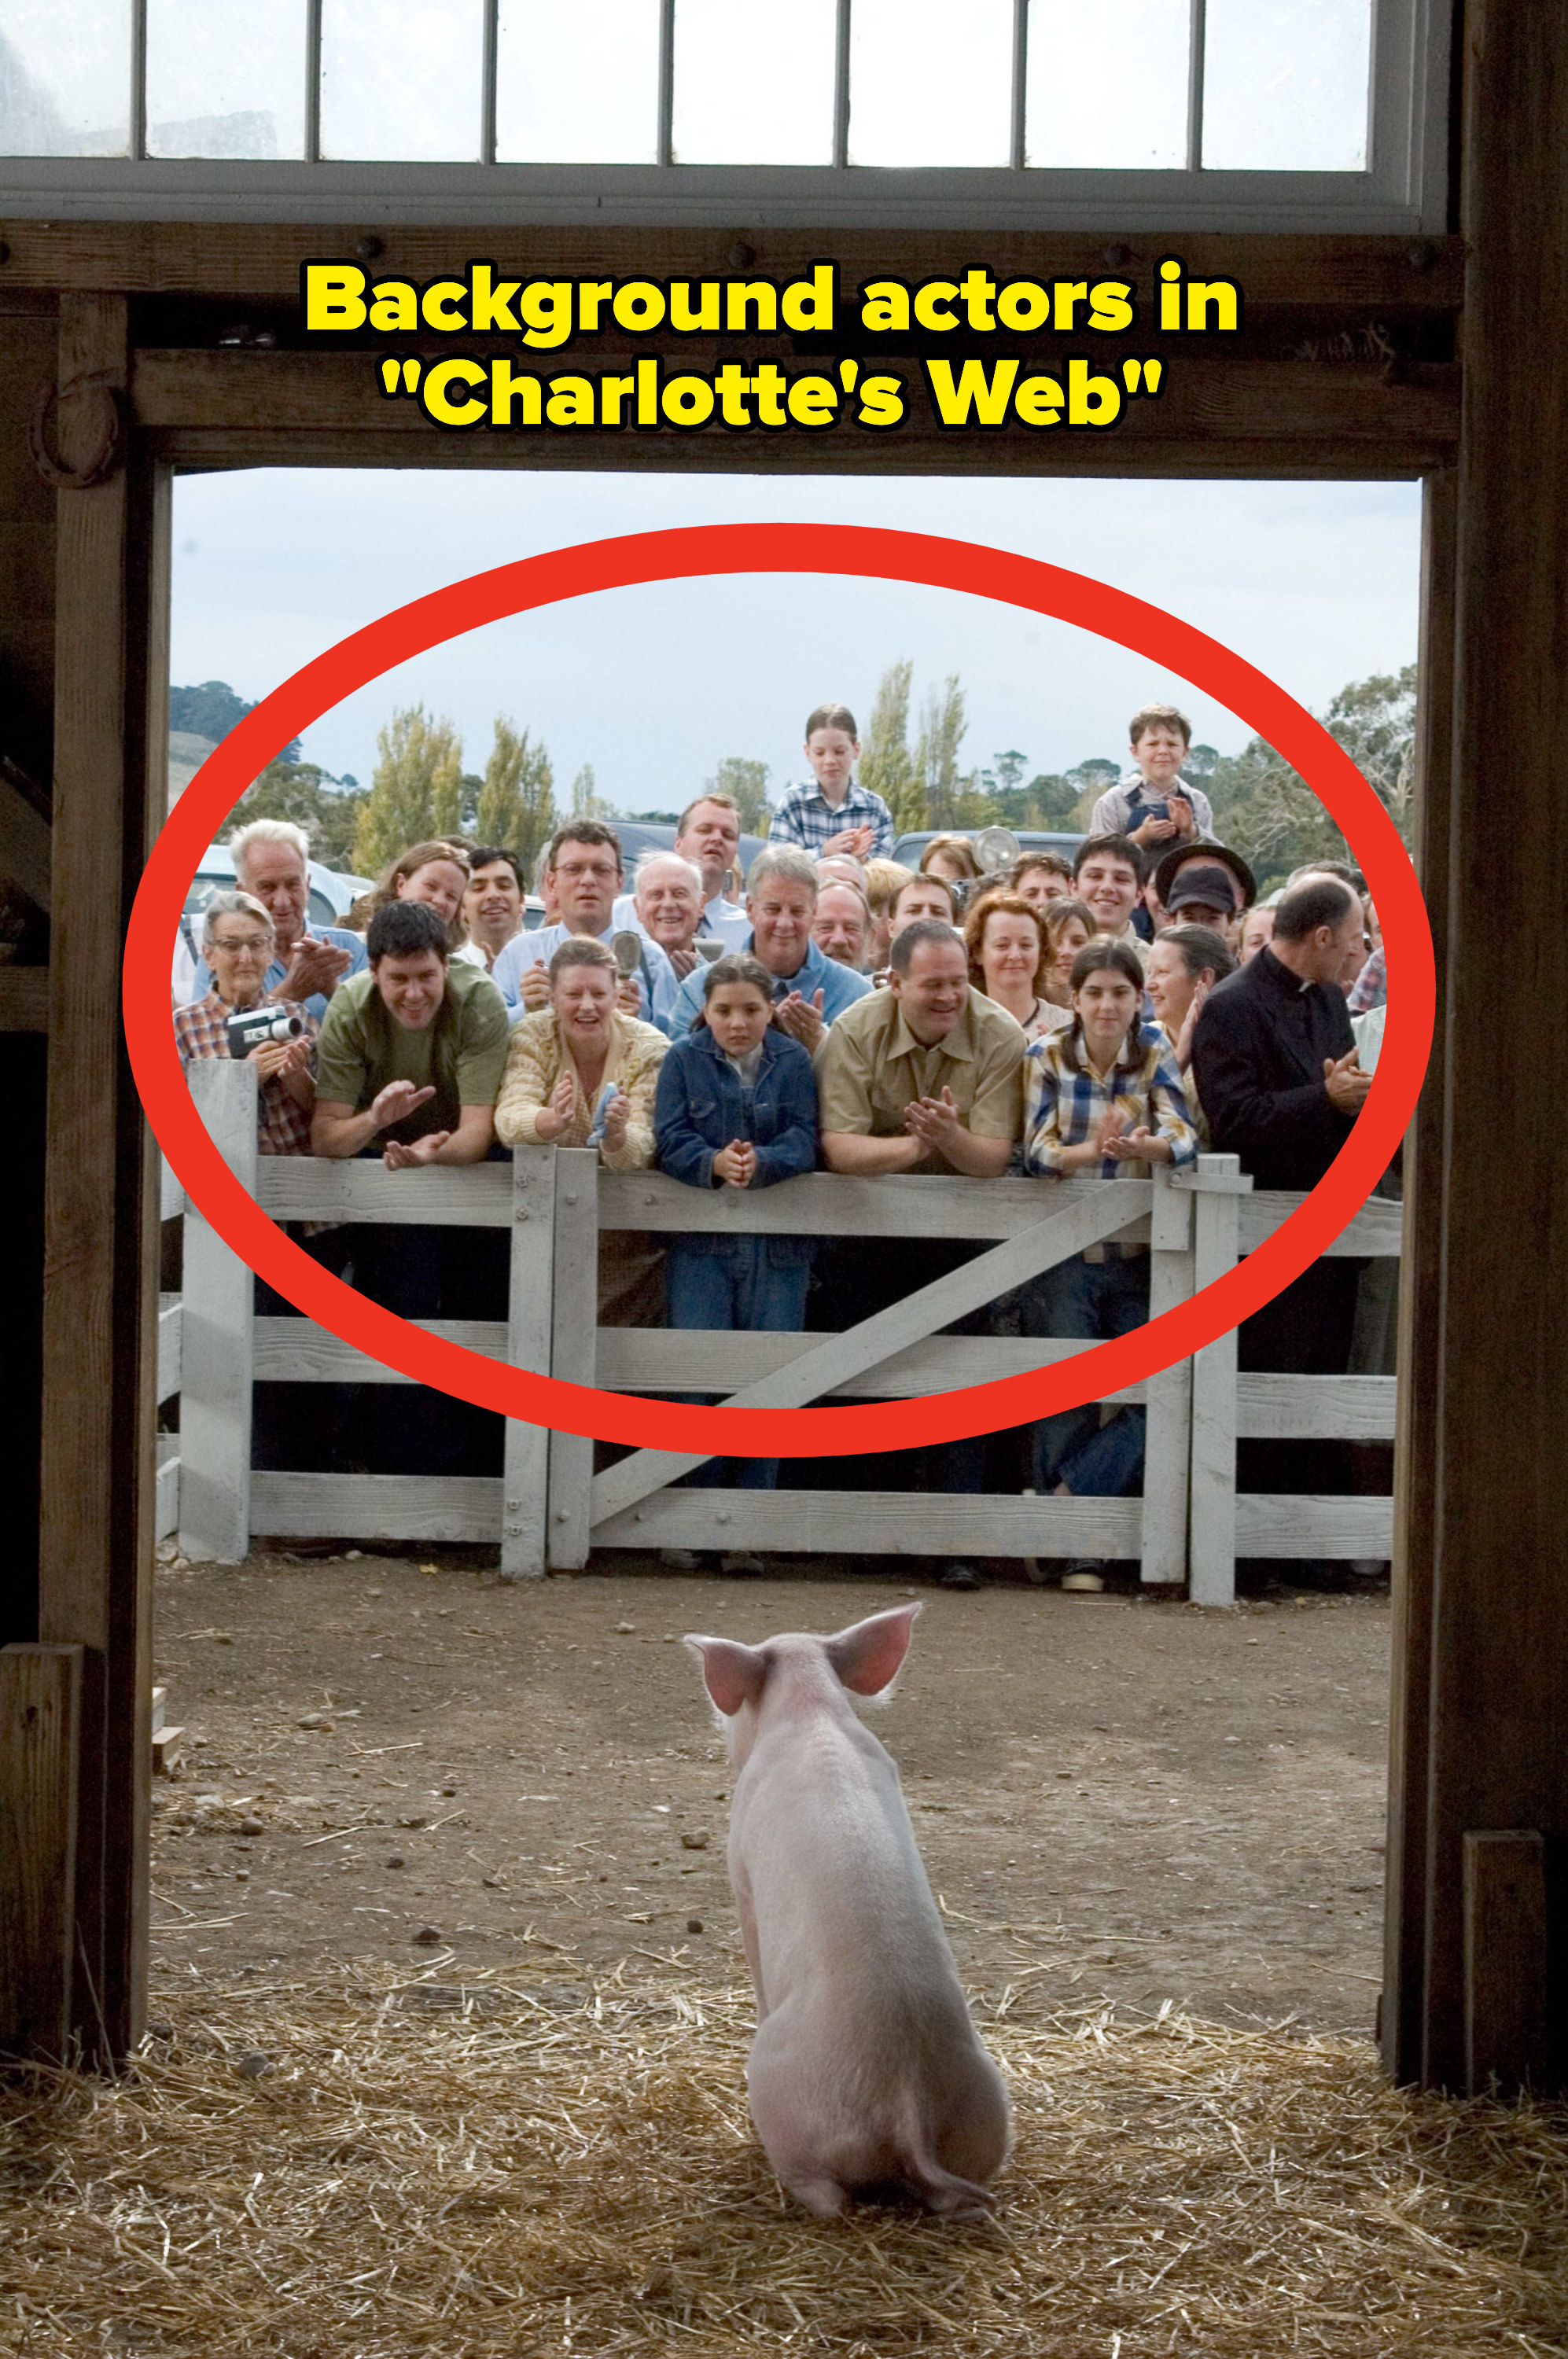 A group of people staring at a pig